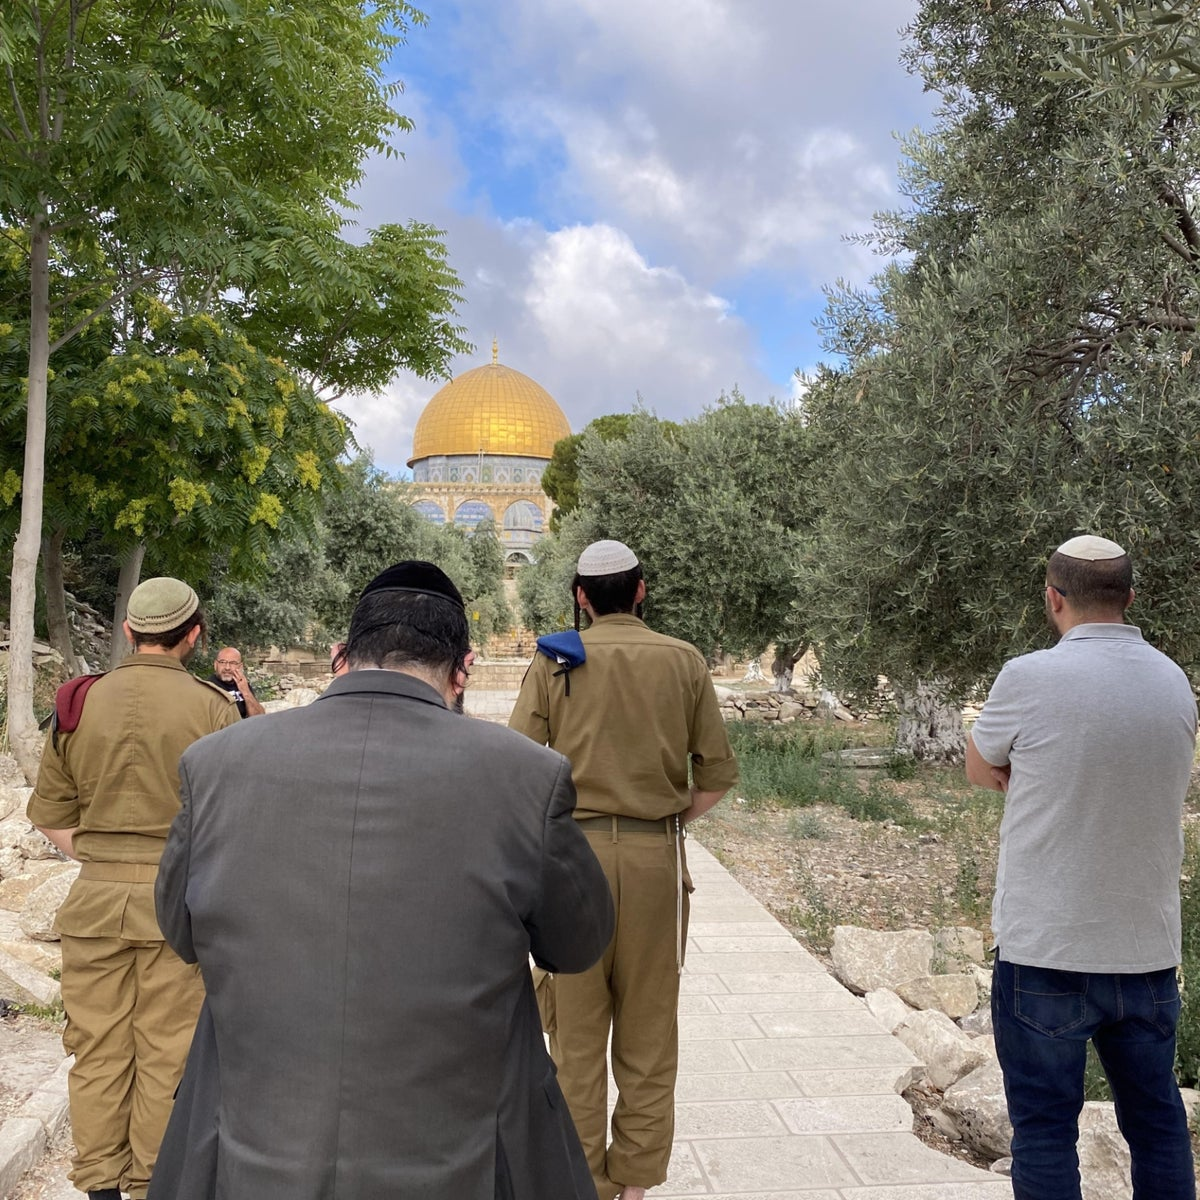 Jewish worshippers, including several ultra-Orthodox men and off-duty soldiers, pray opposite the Dome of the Rock, the site of the Holy of Holies in the first and second Temples.